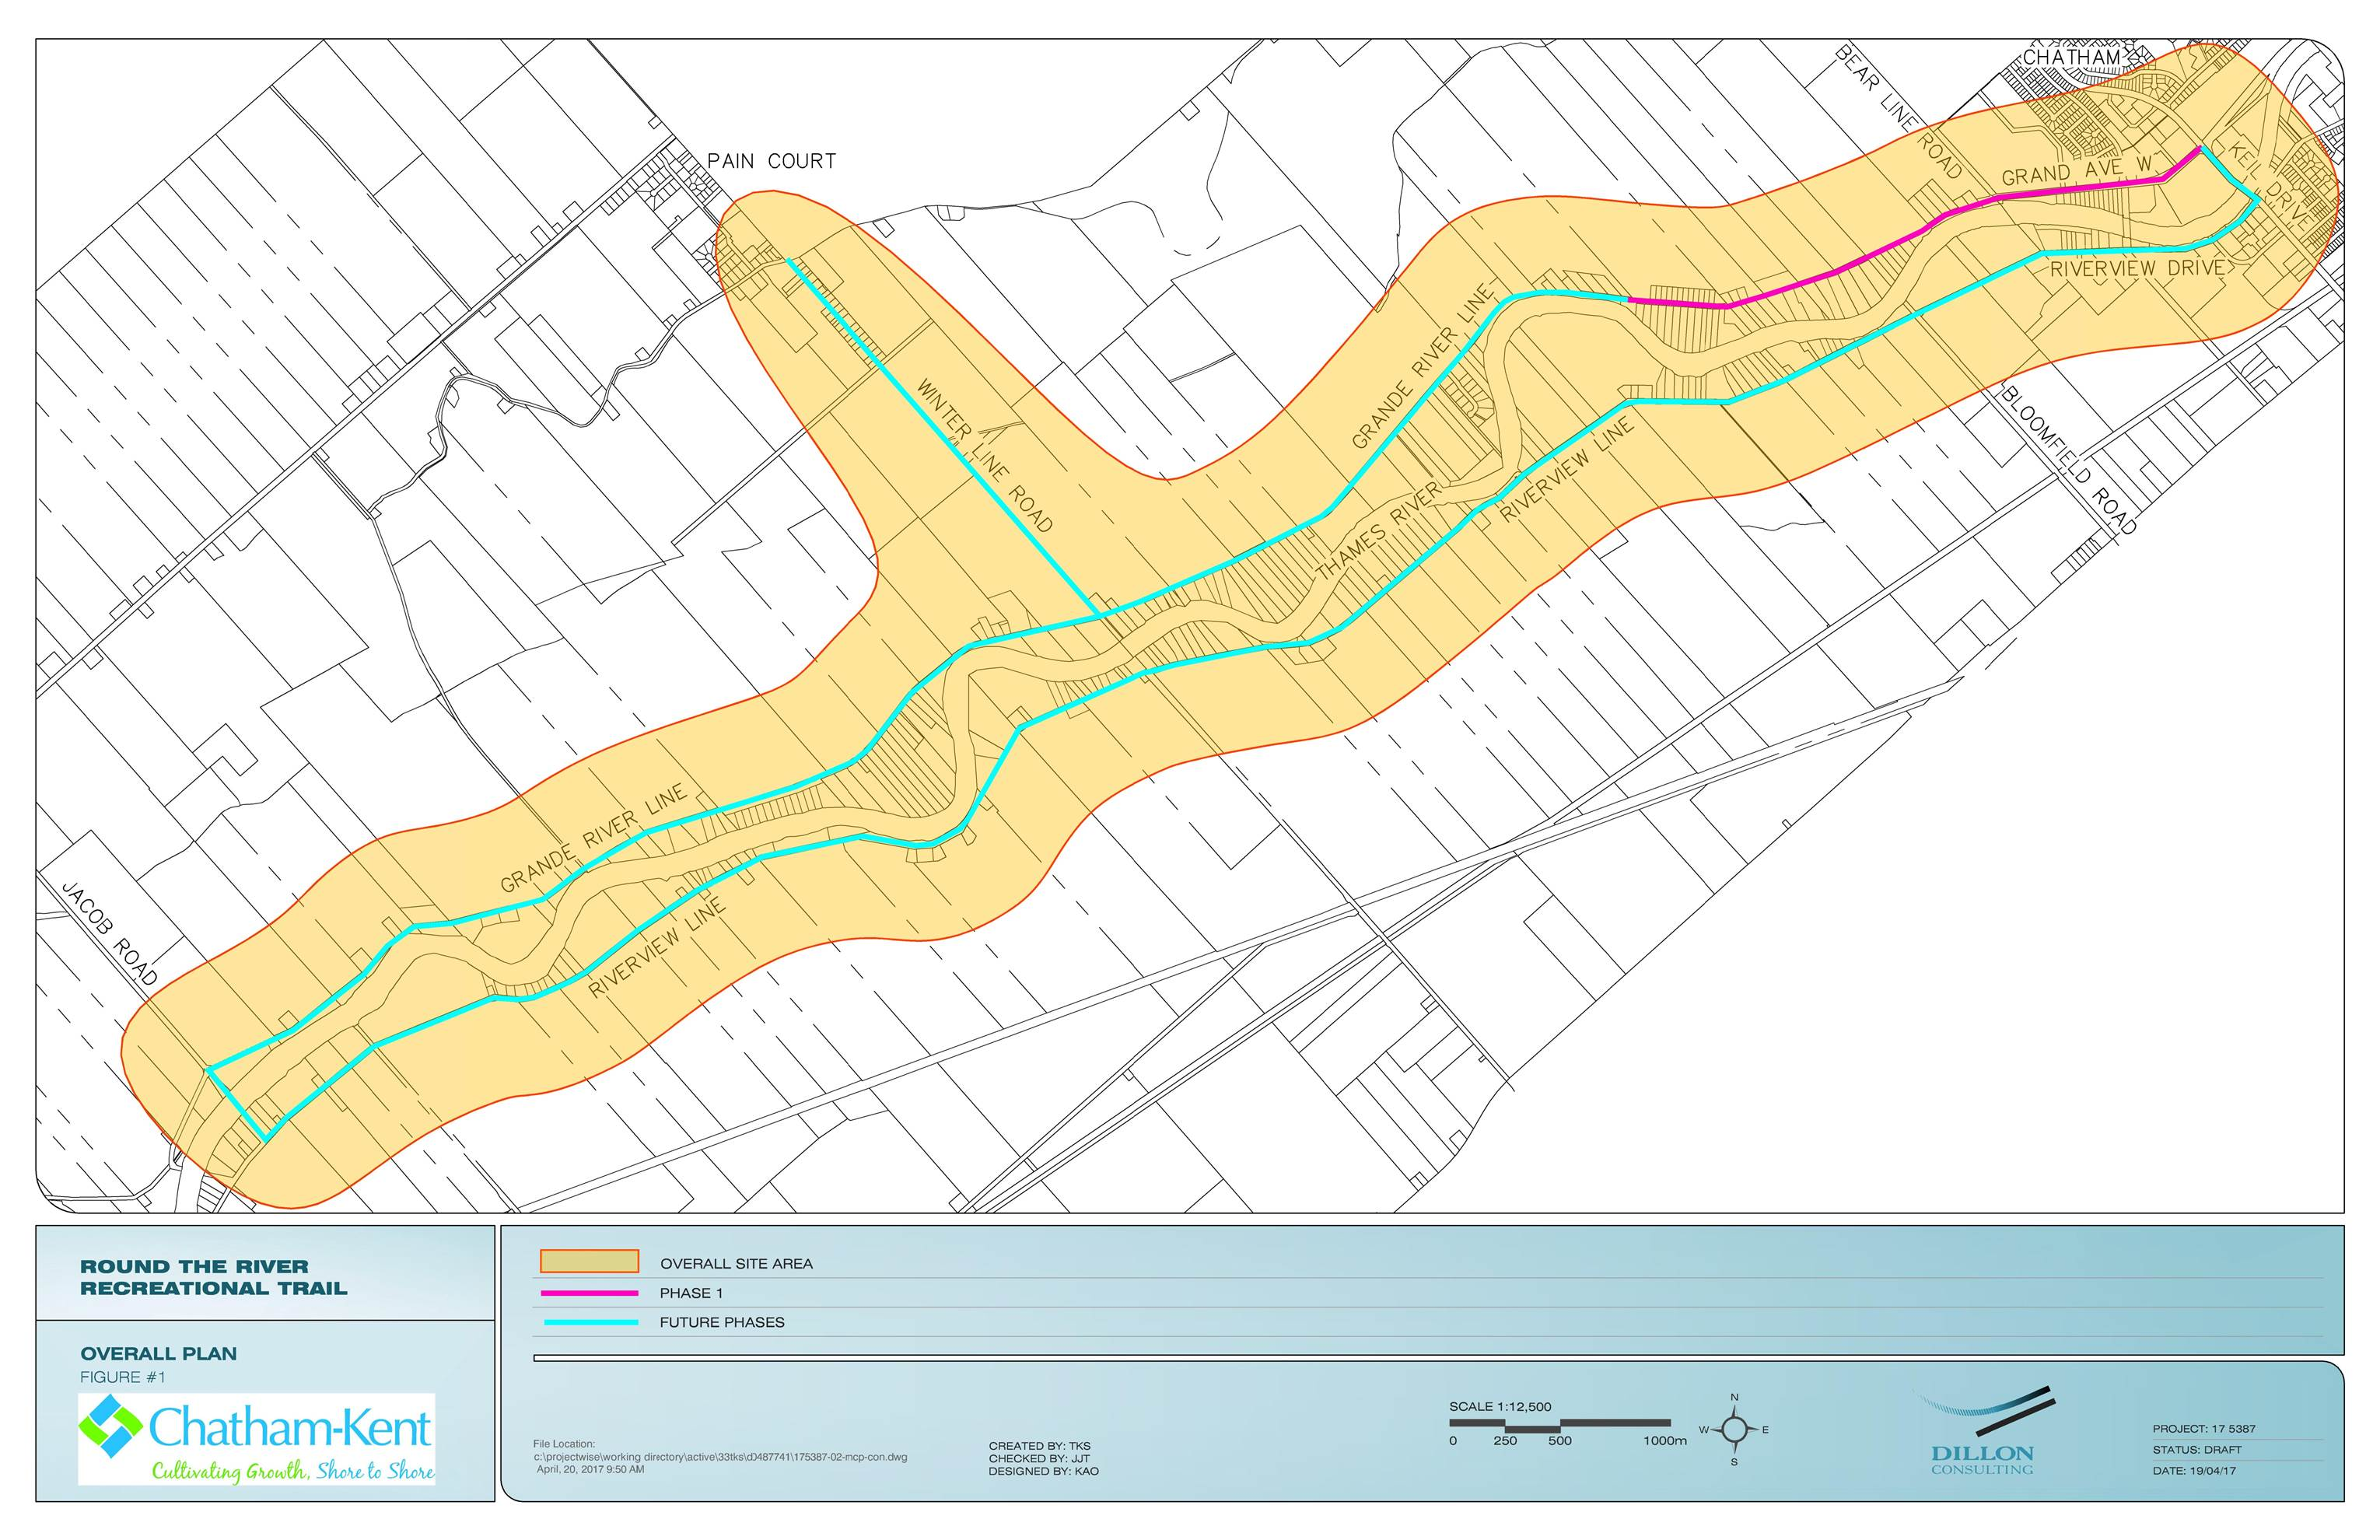 Round the River Route Overall Plan